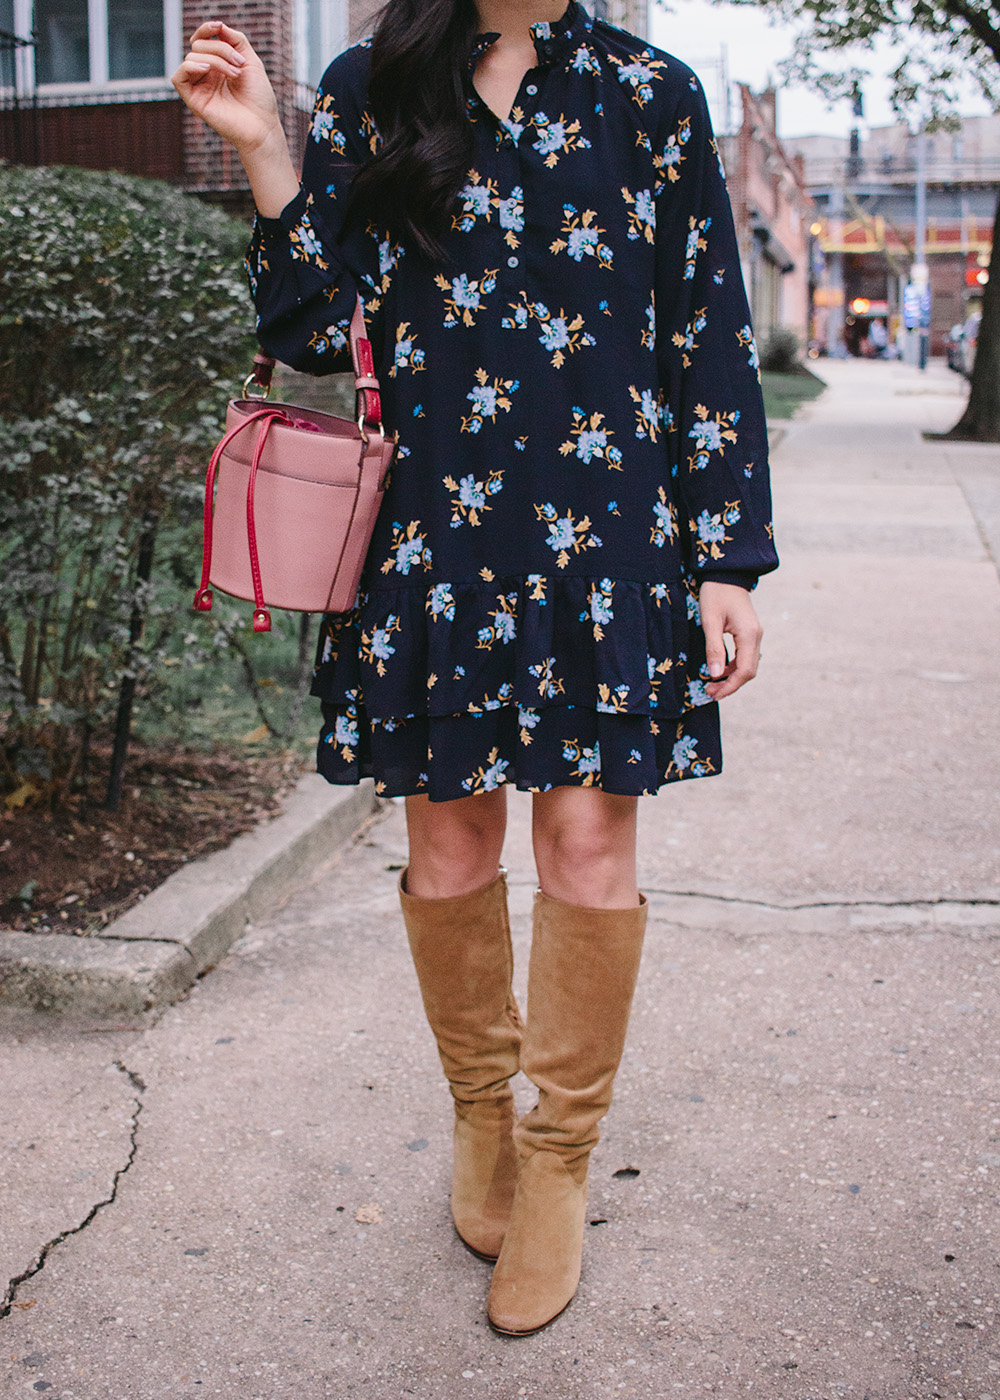 Long Sleeve Floral Dress & Brown Suede Knee High Boots